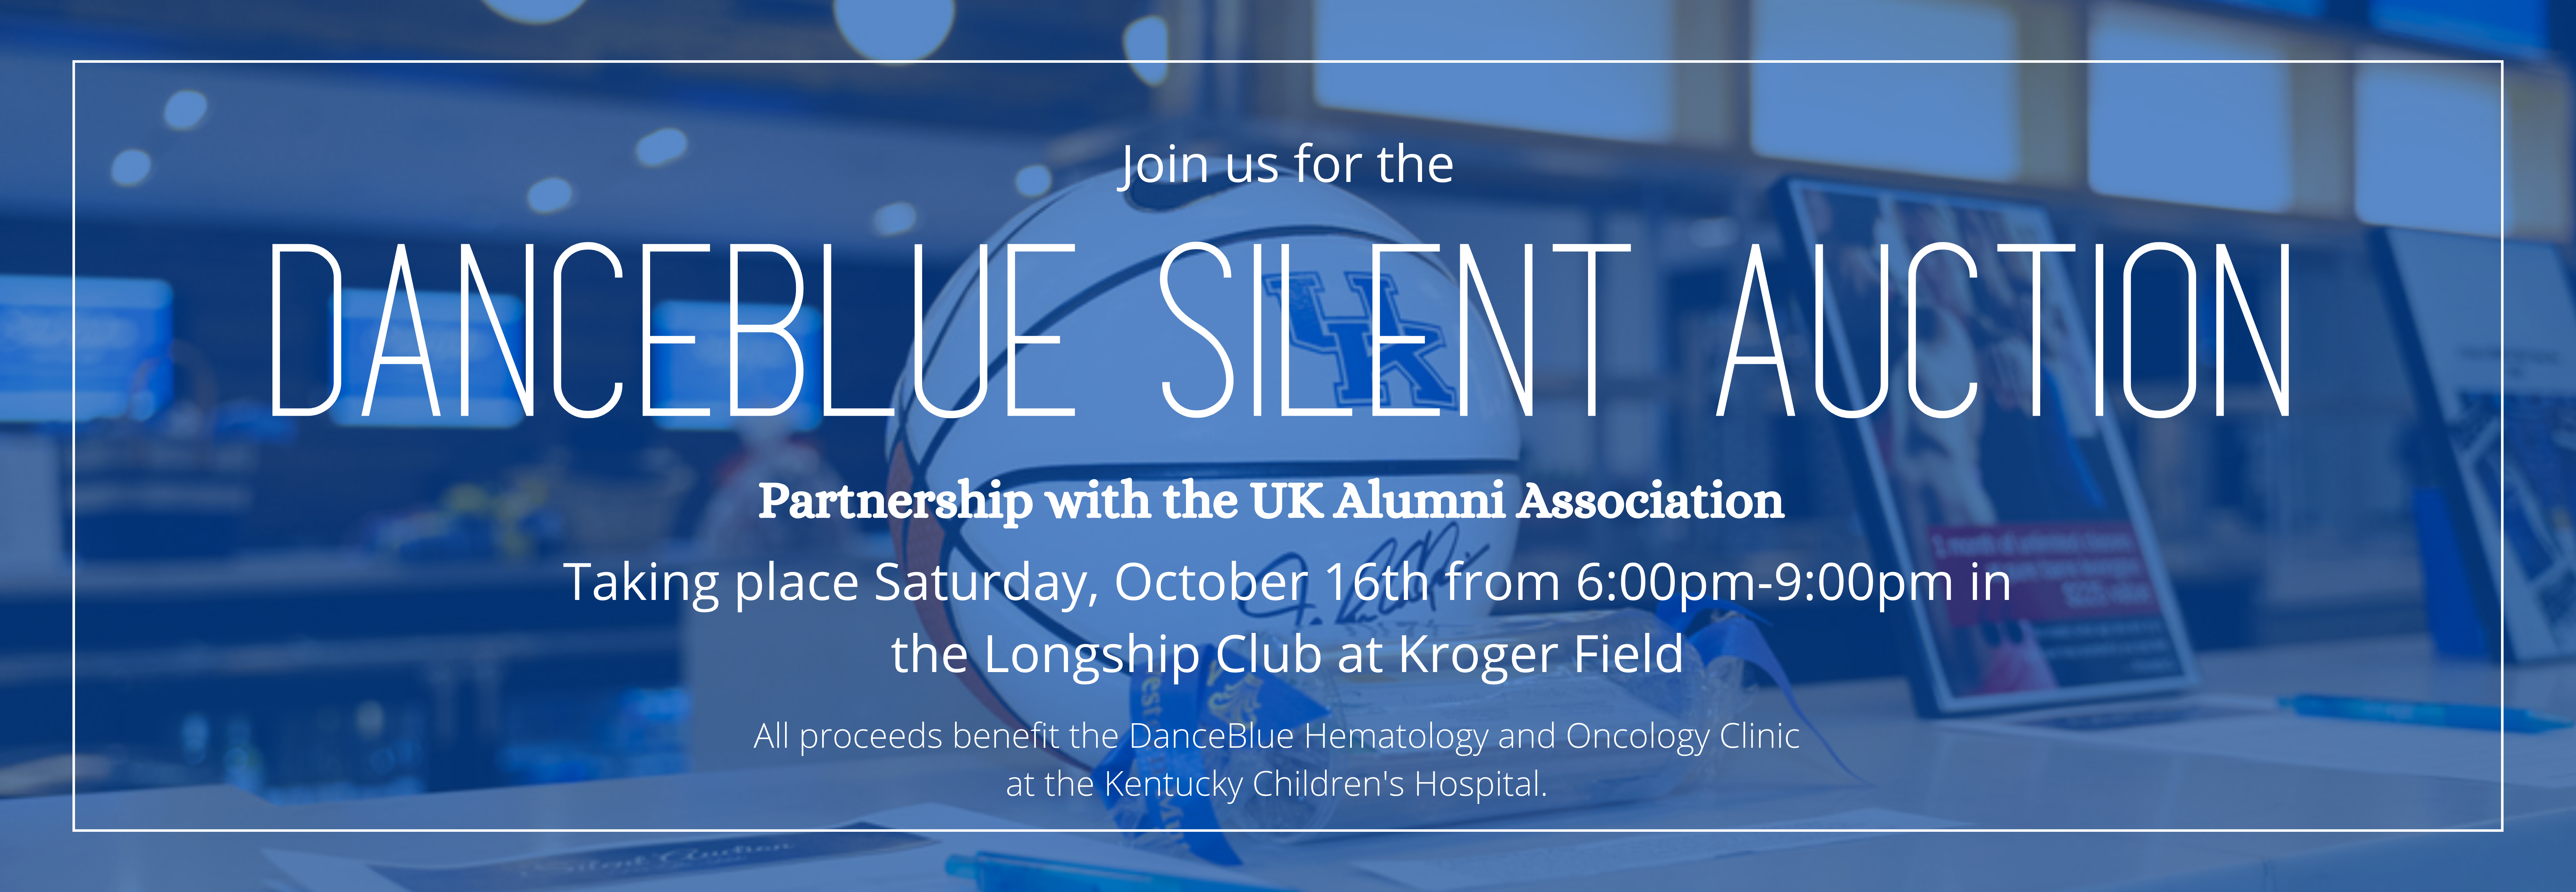 Join us for the DanceBlue Silent Auction